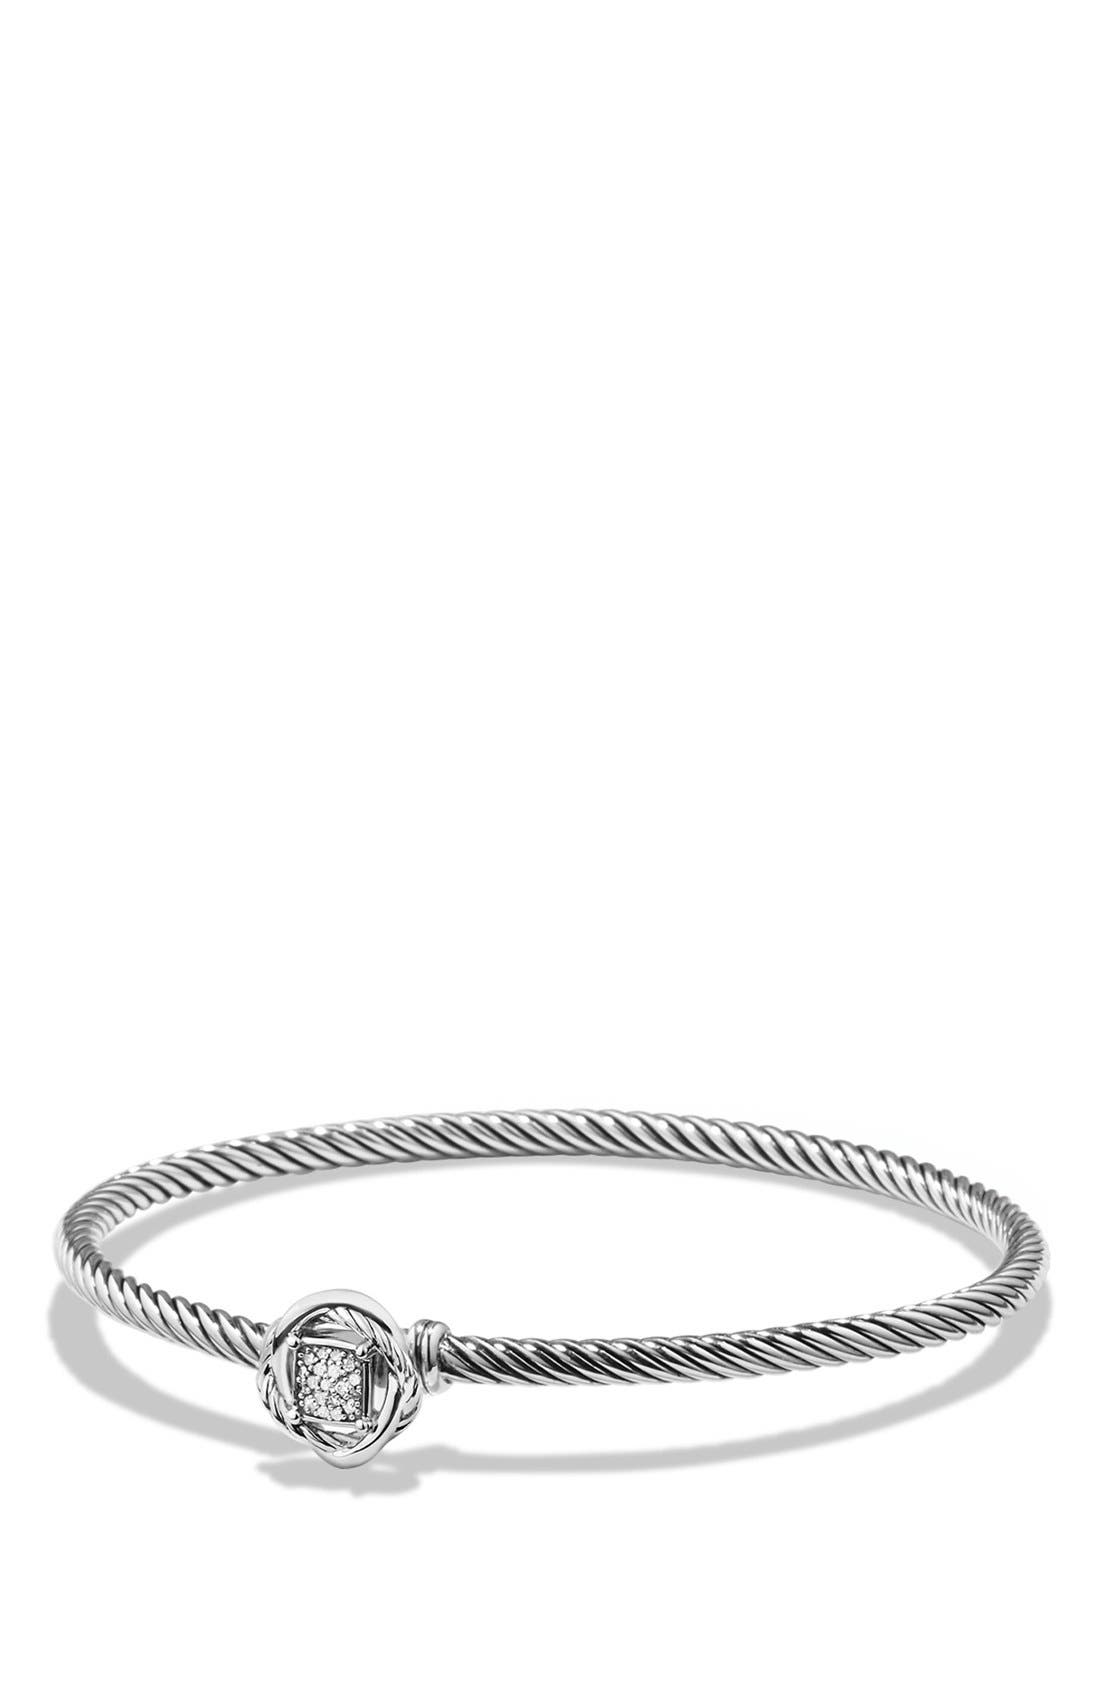 David Yurman 'Infinity' Bracelet with Diamonds